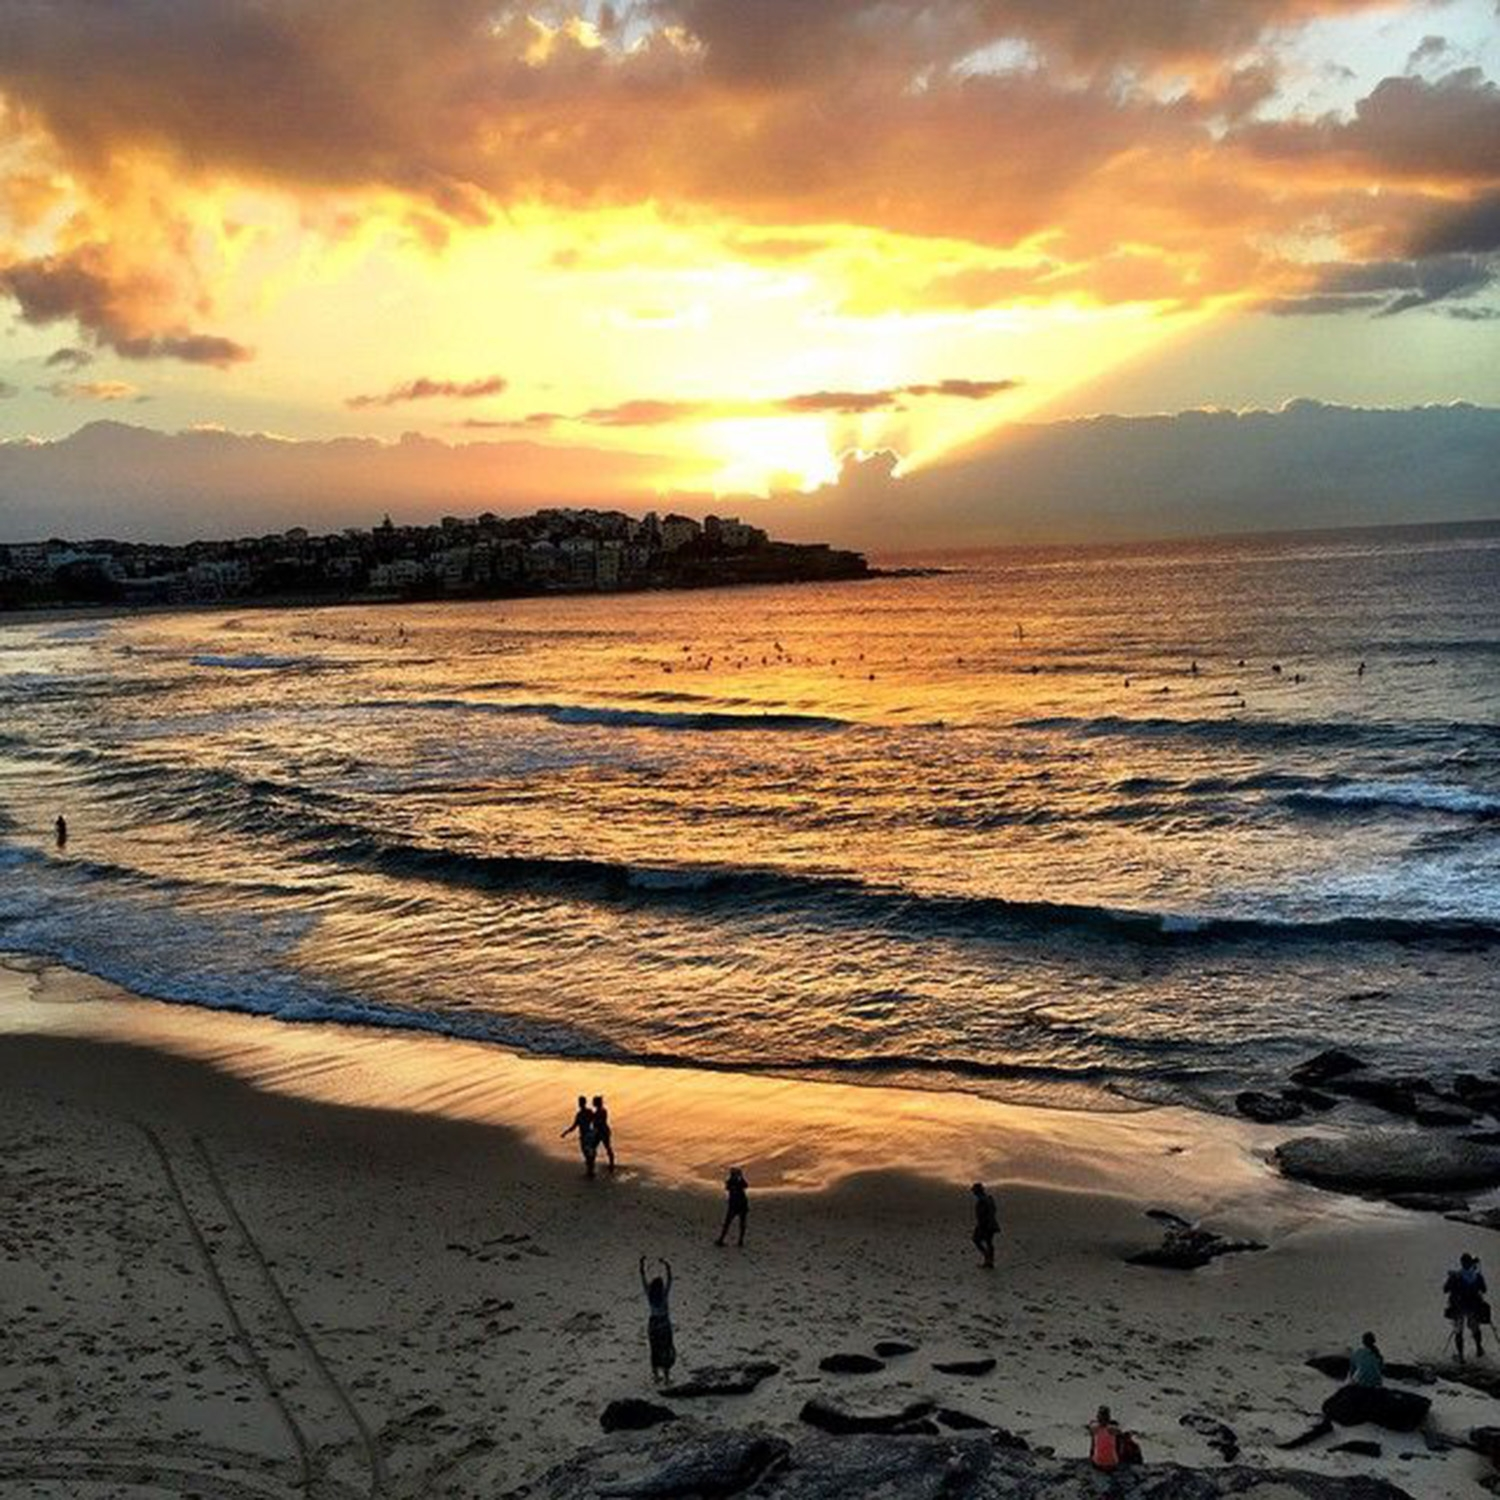 The sun setting over calm waters at South Bondi